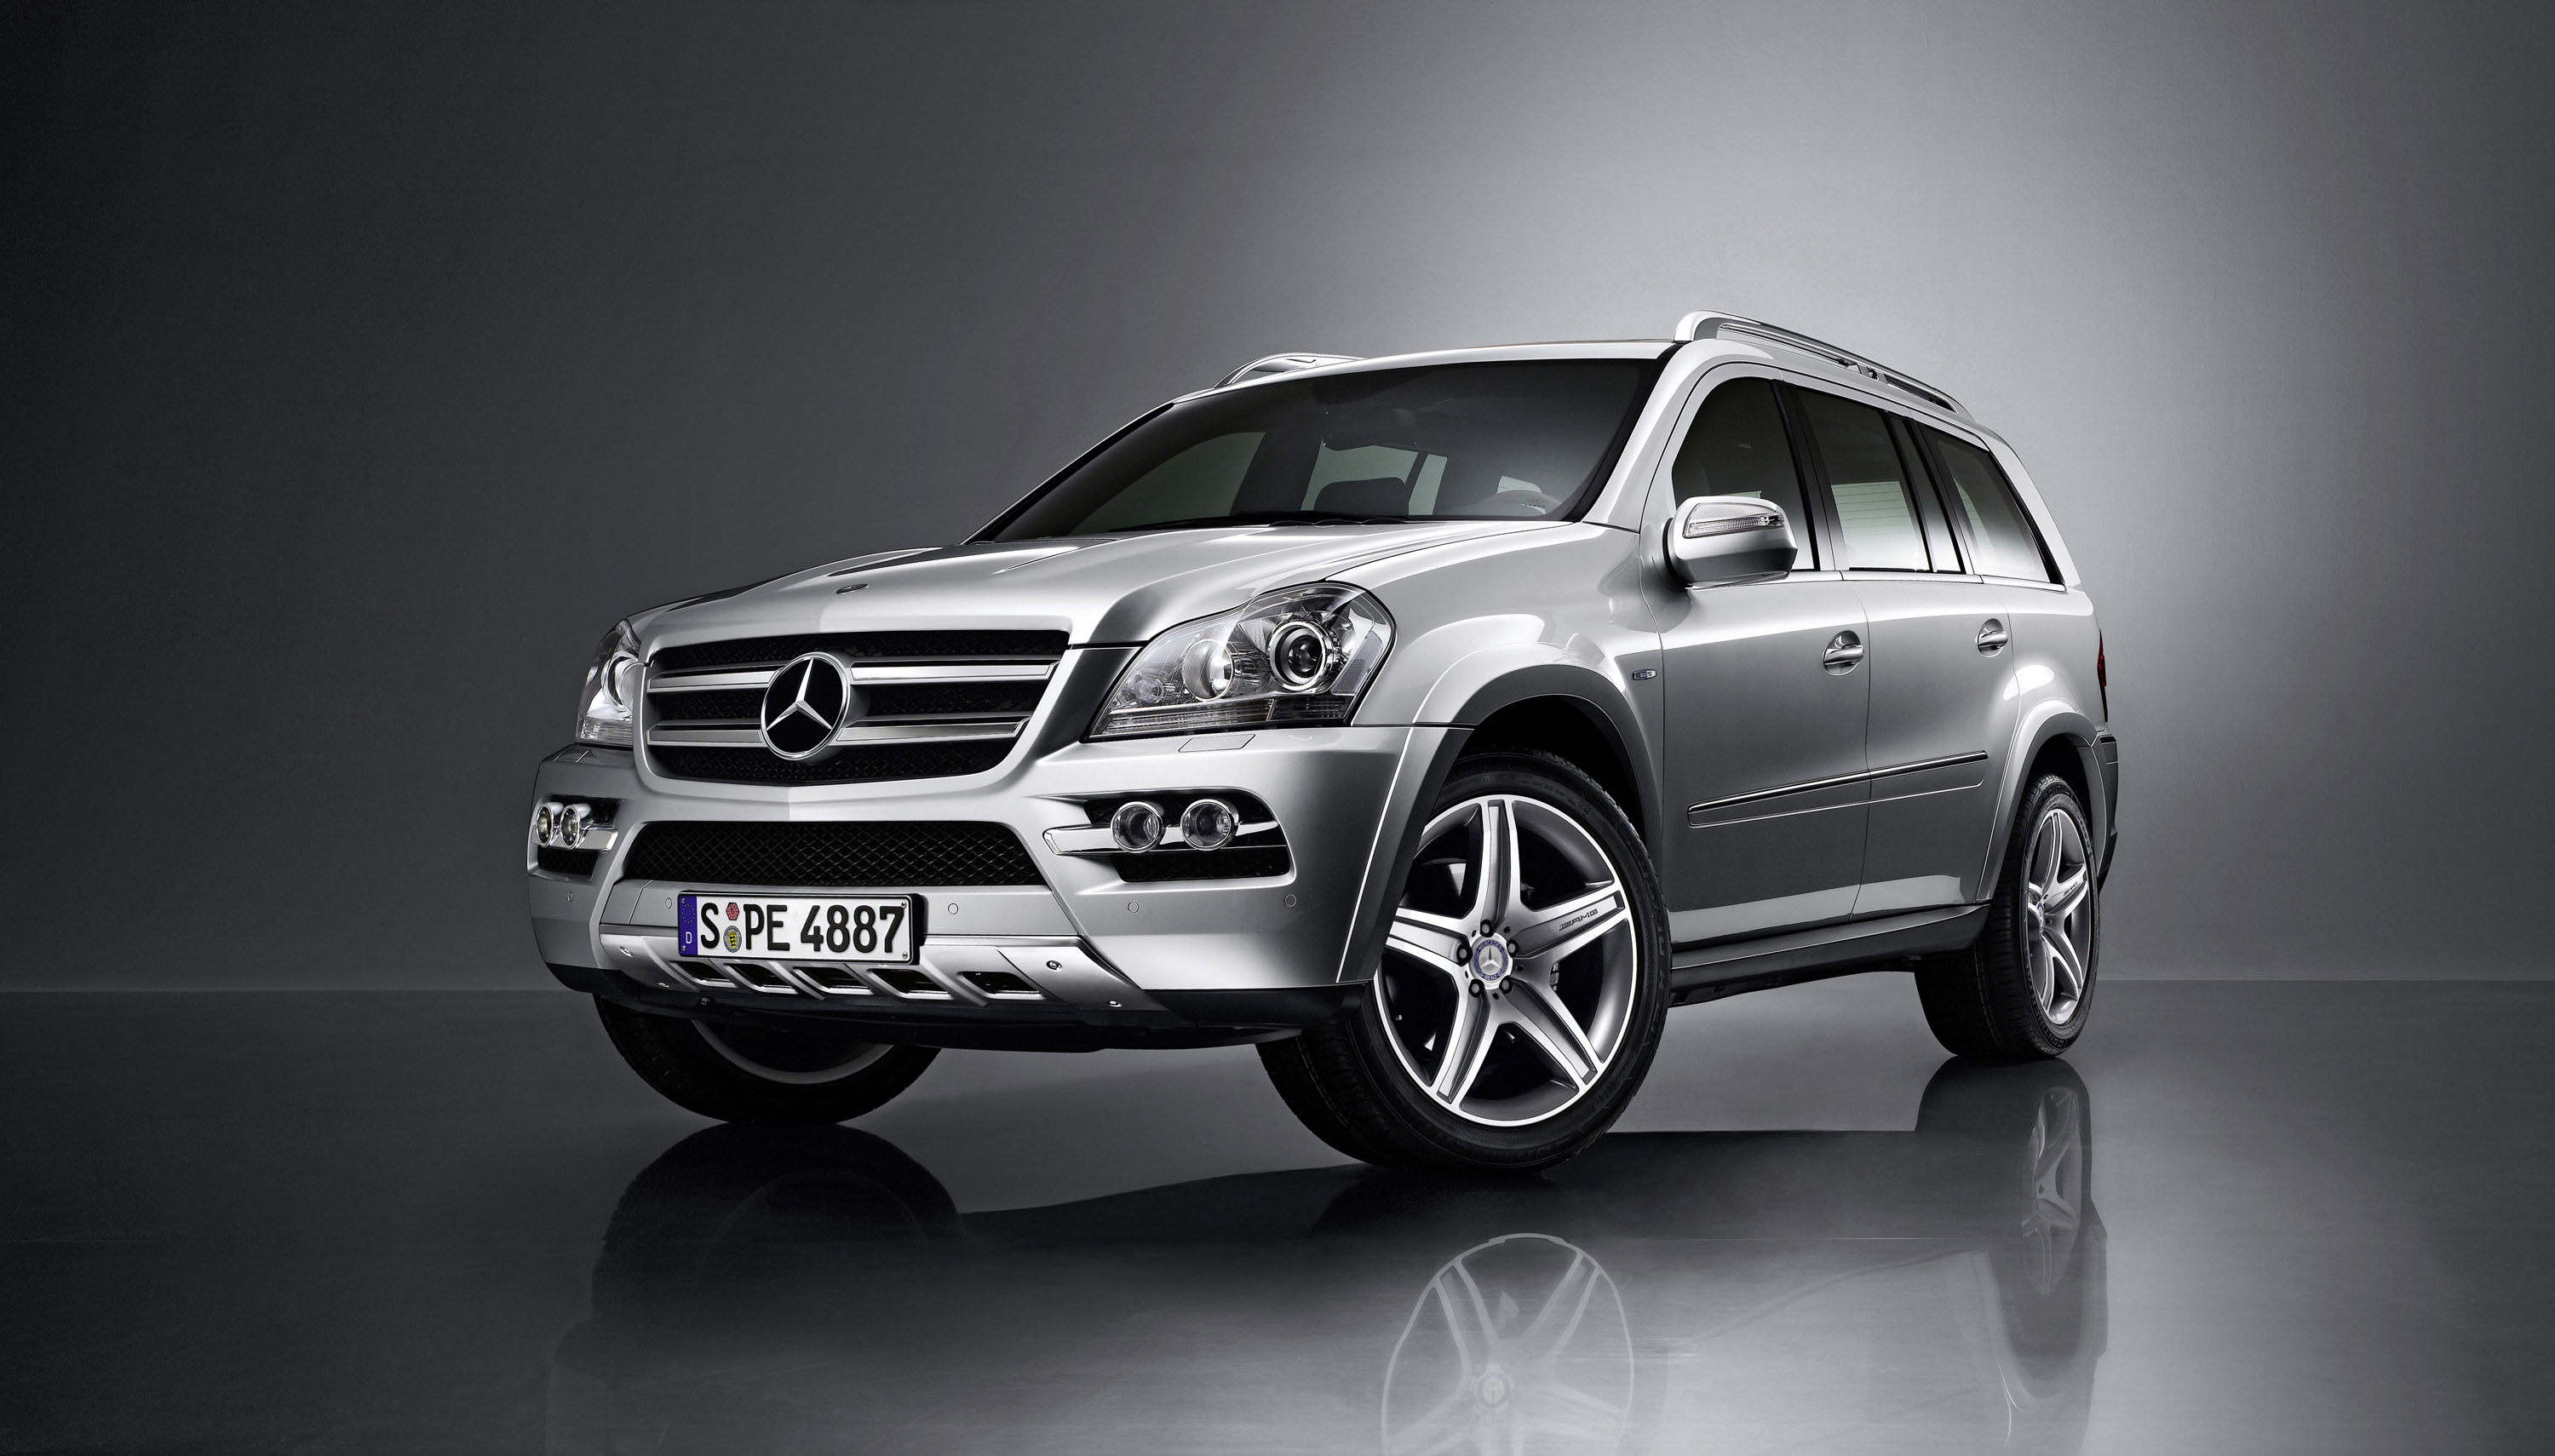 benz mercedes youtube gl show walkaround motor exterior bluetec geneva interior watch